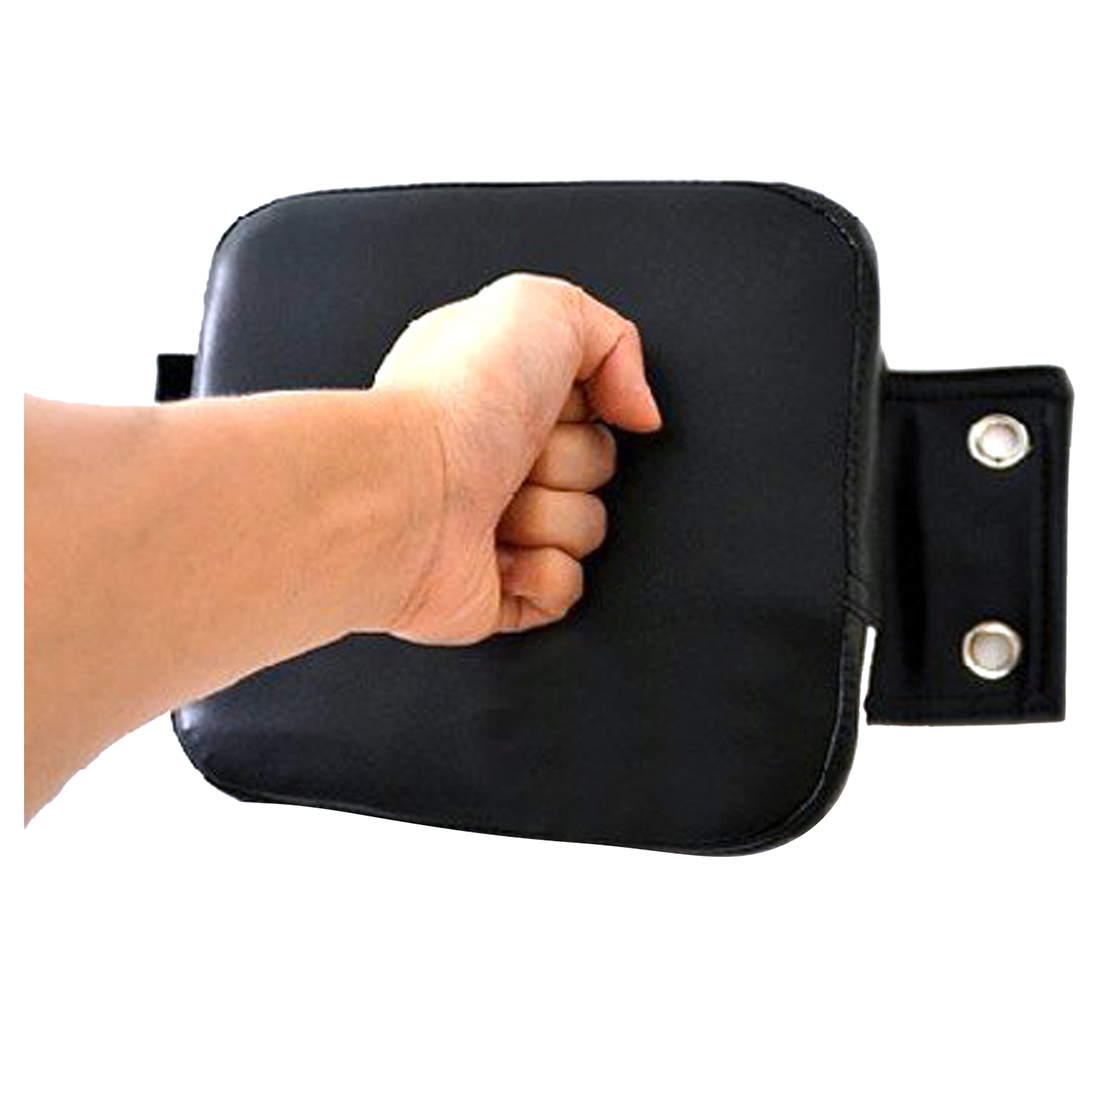 Wholesale! Punch Wall Focus Target Pad WING CHUN Boxing Fight Sanda Taekowndo Training Bag